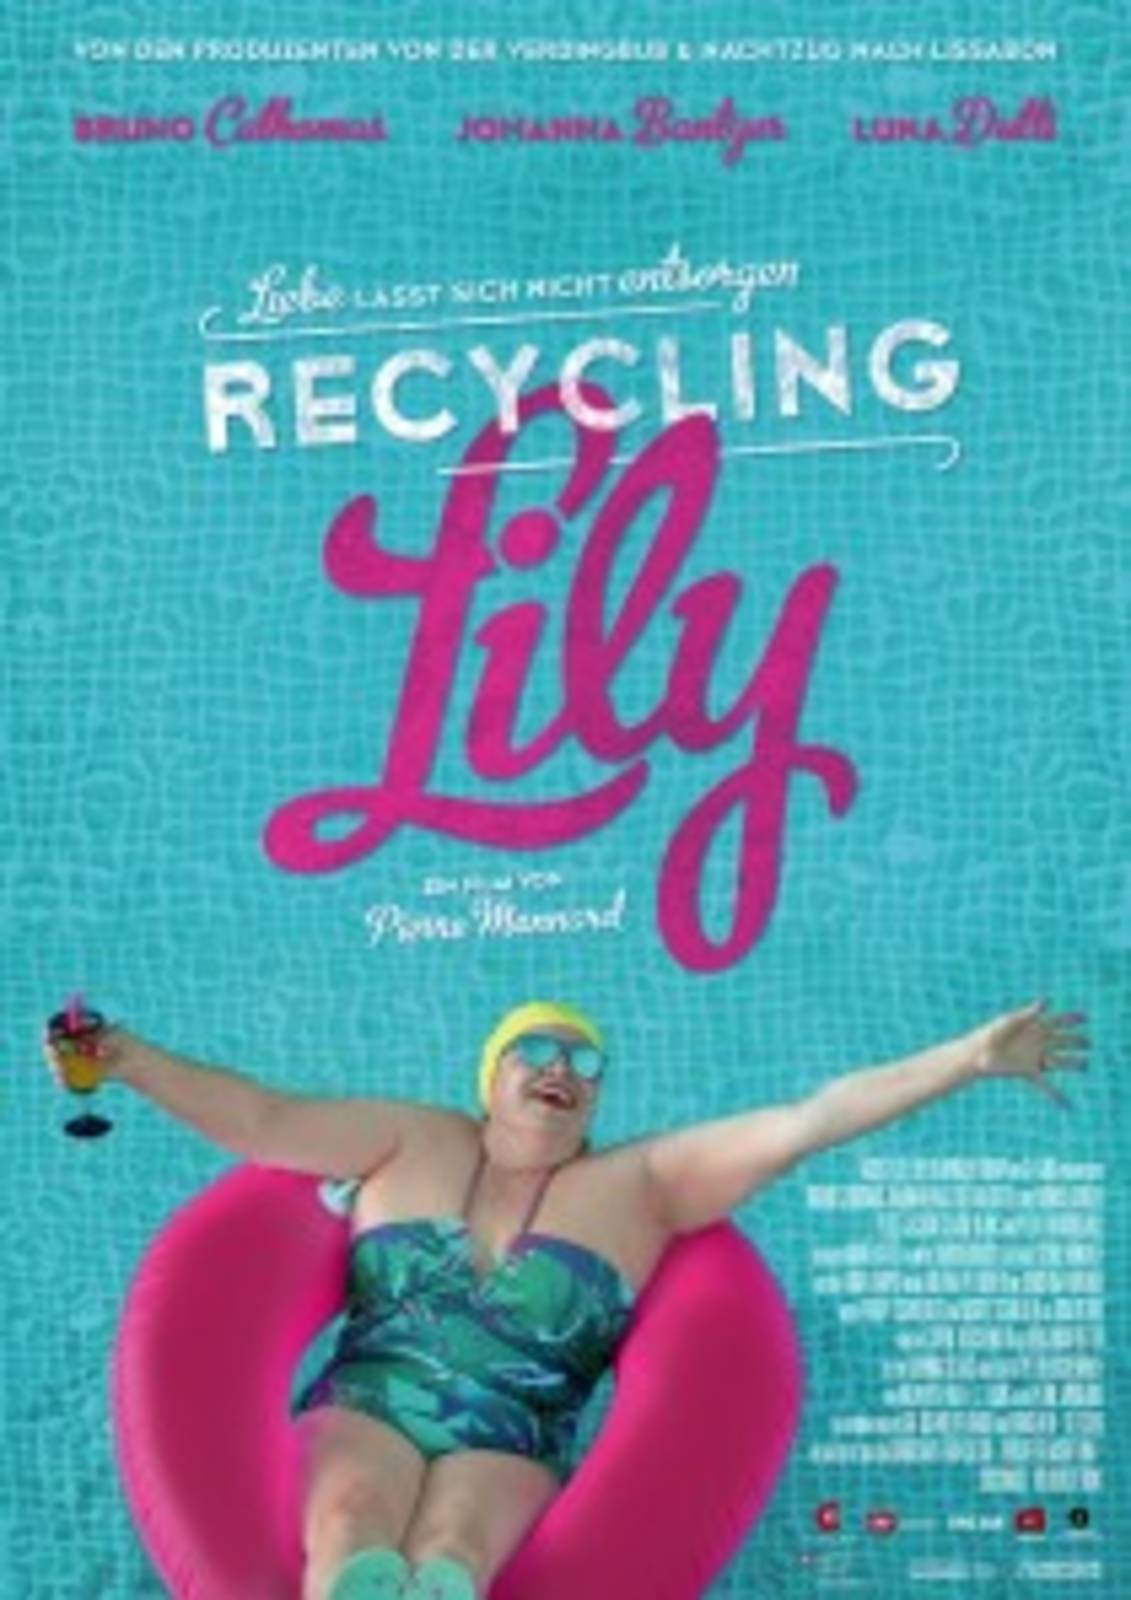 Film Recycling Lily Cineman